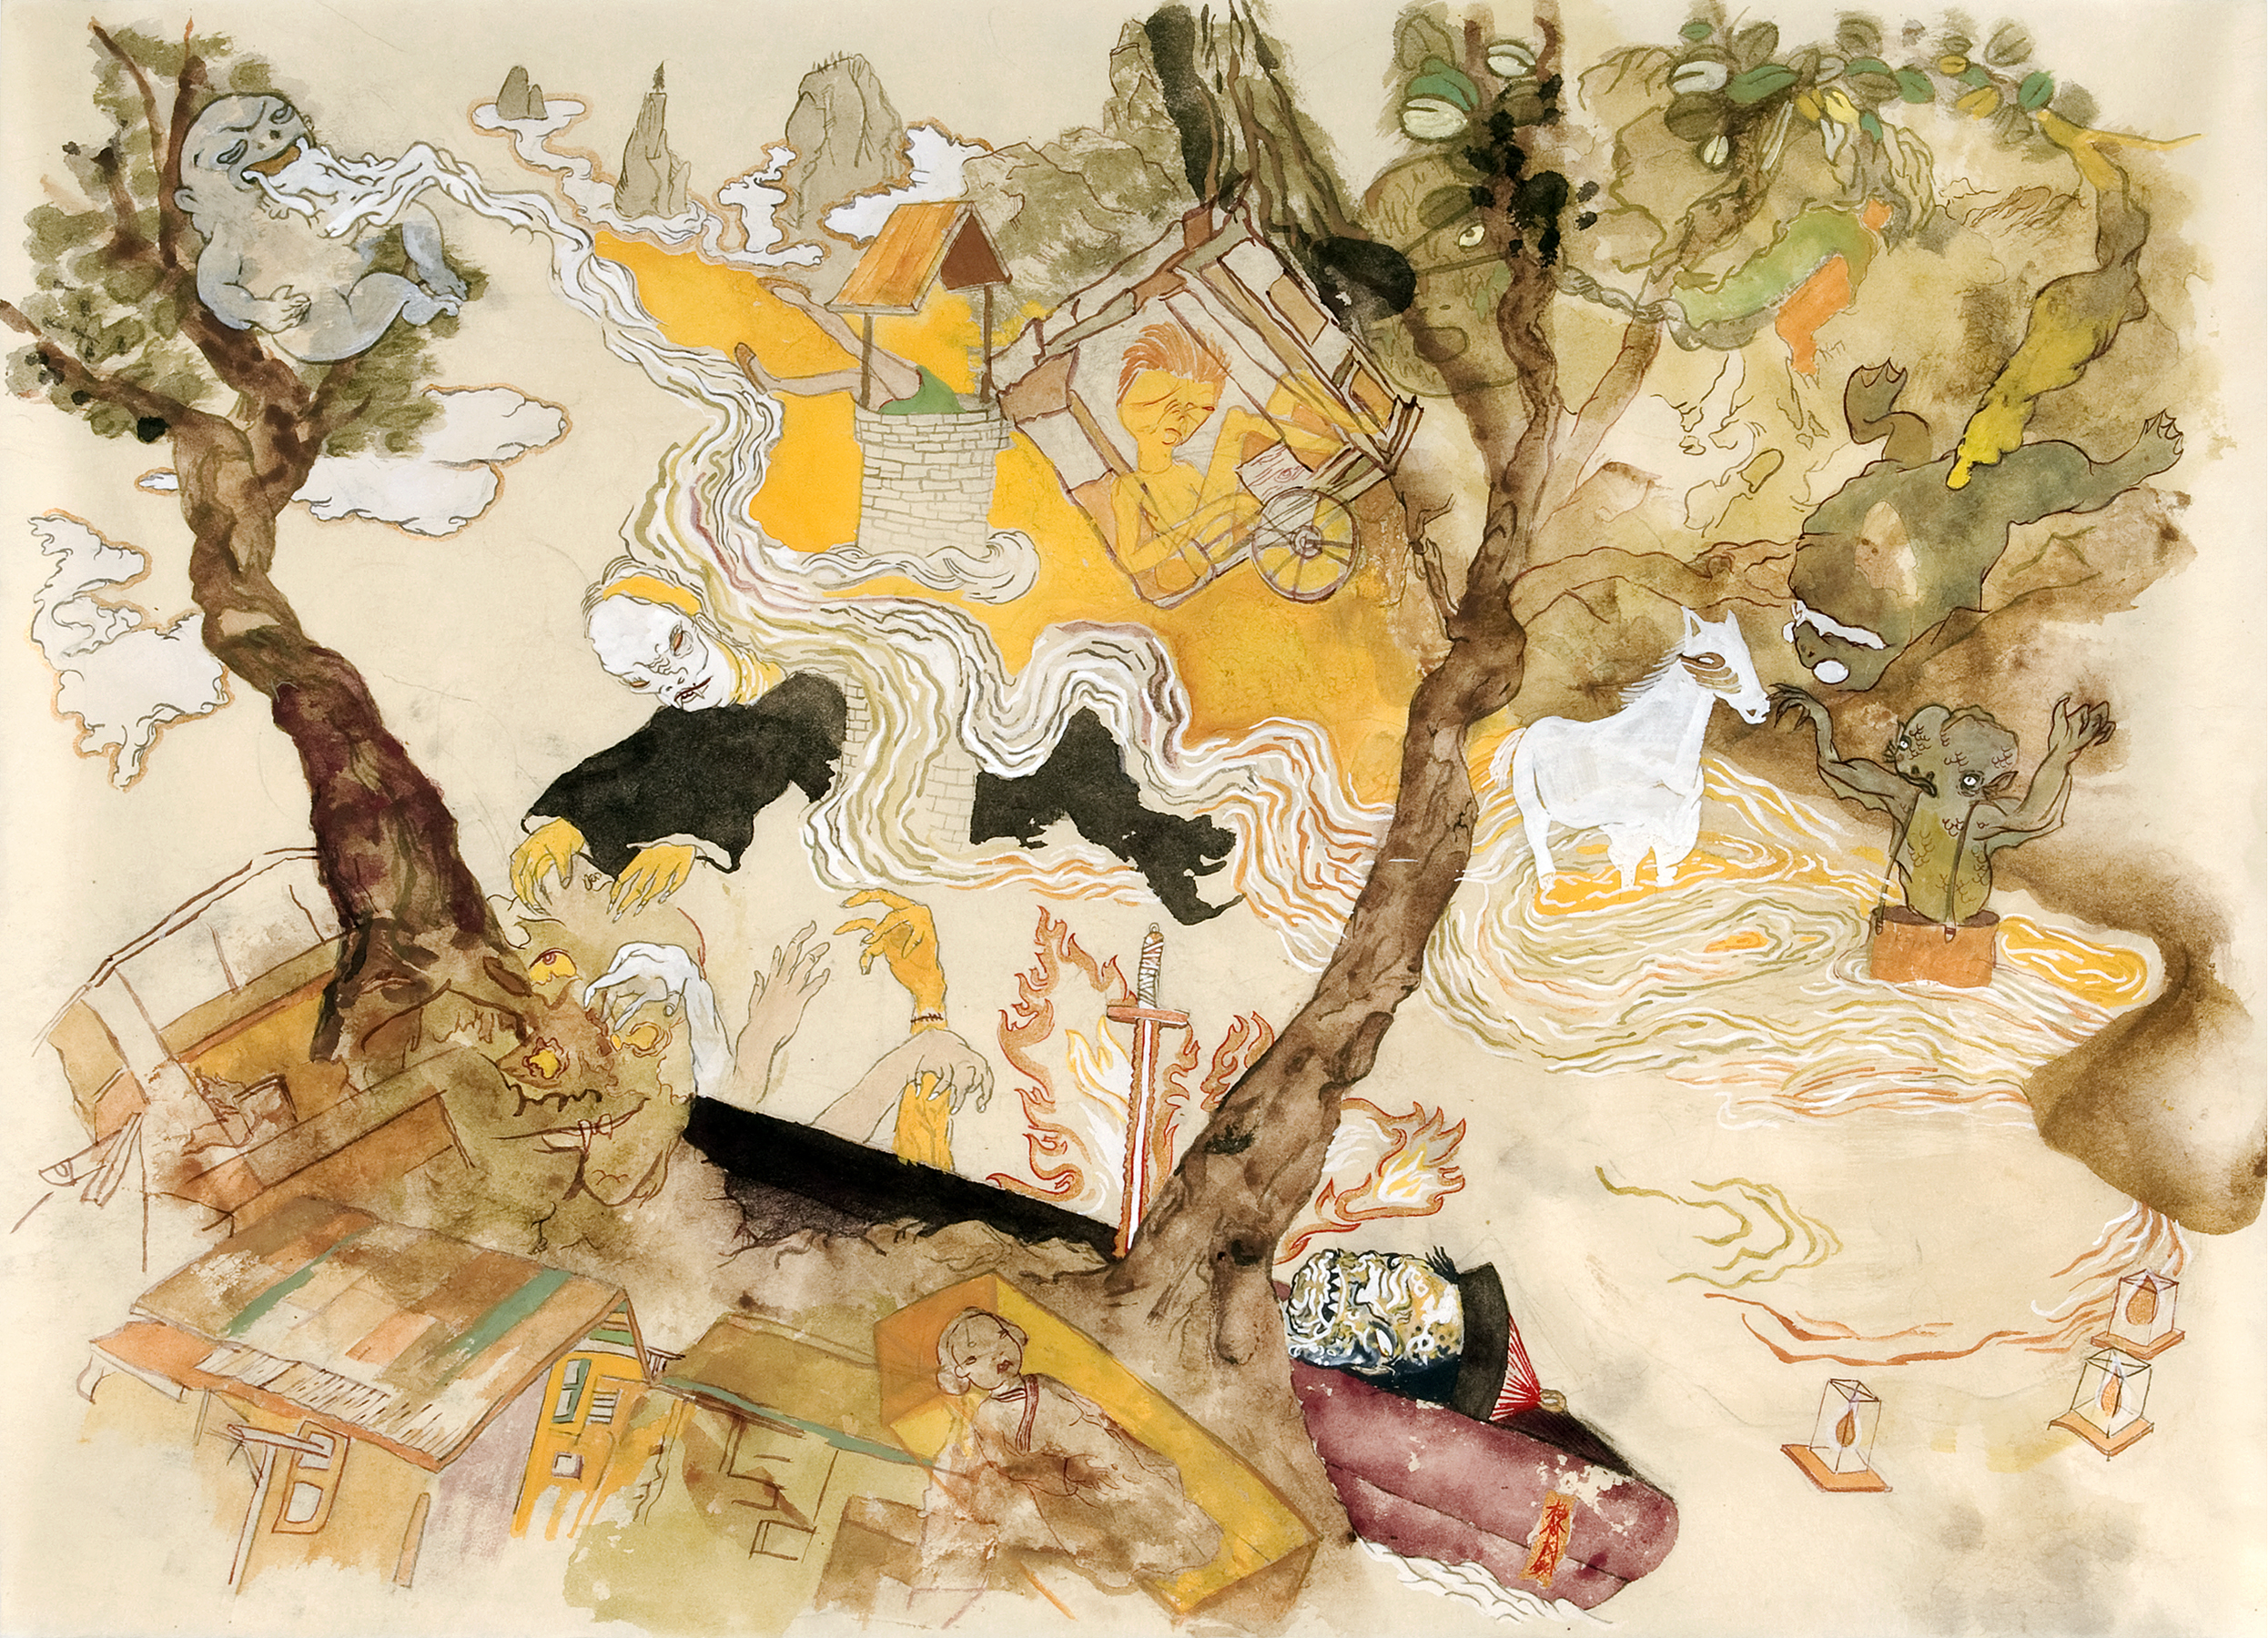 Howie Tsui 徐浩恩, Gangshi Creek 僵尸河, 2008, ink and paint pigments on mulberry paper 桑皮纸、颜料与墨, 47 x 63 cm